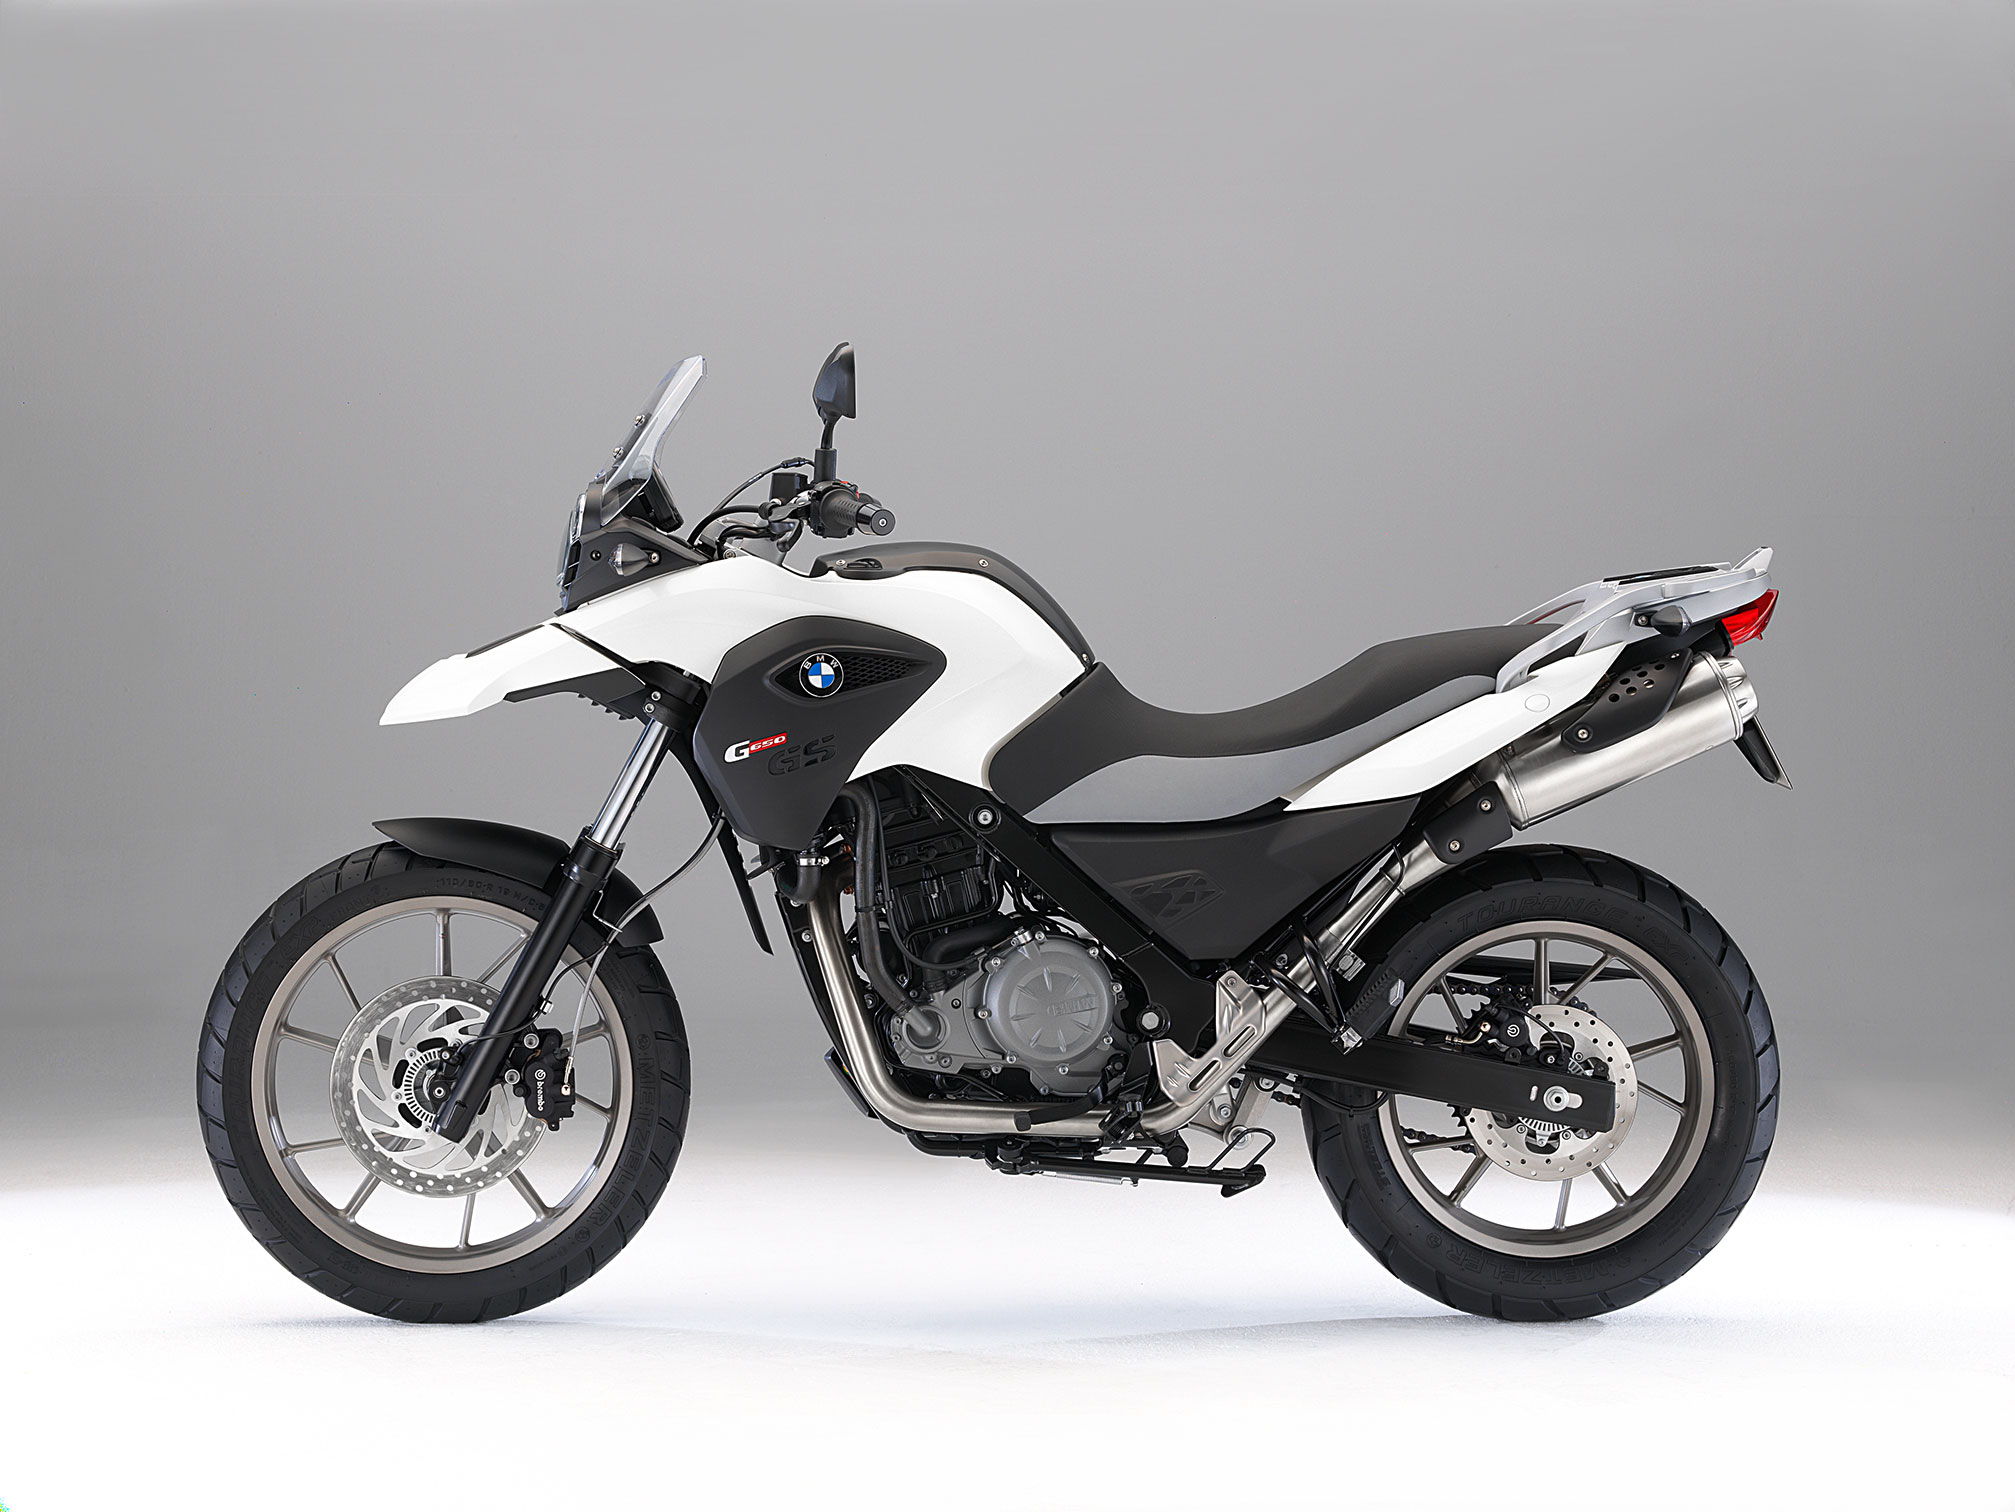 2015 BMW G650GS Review